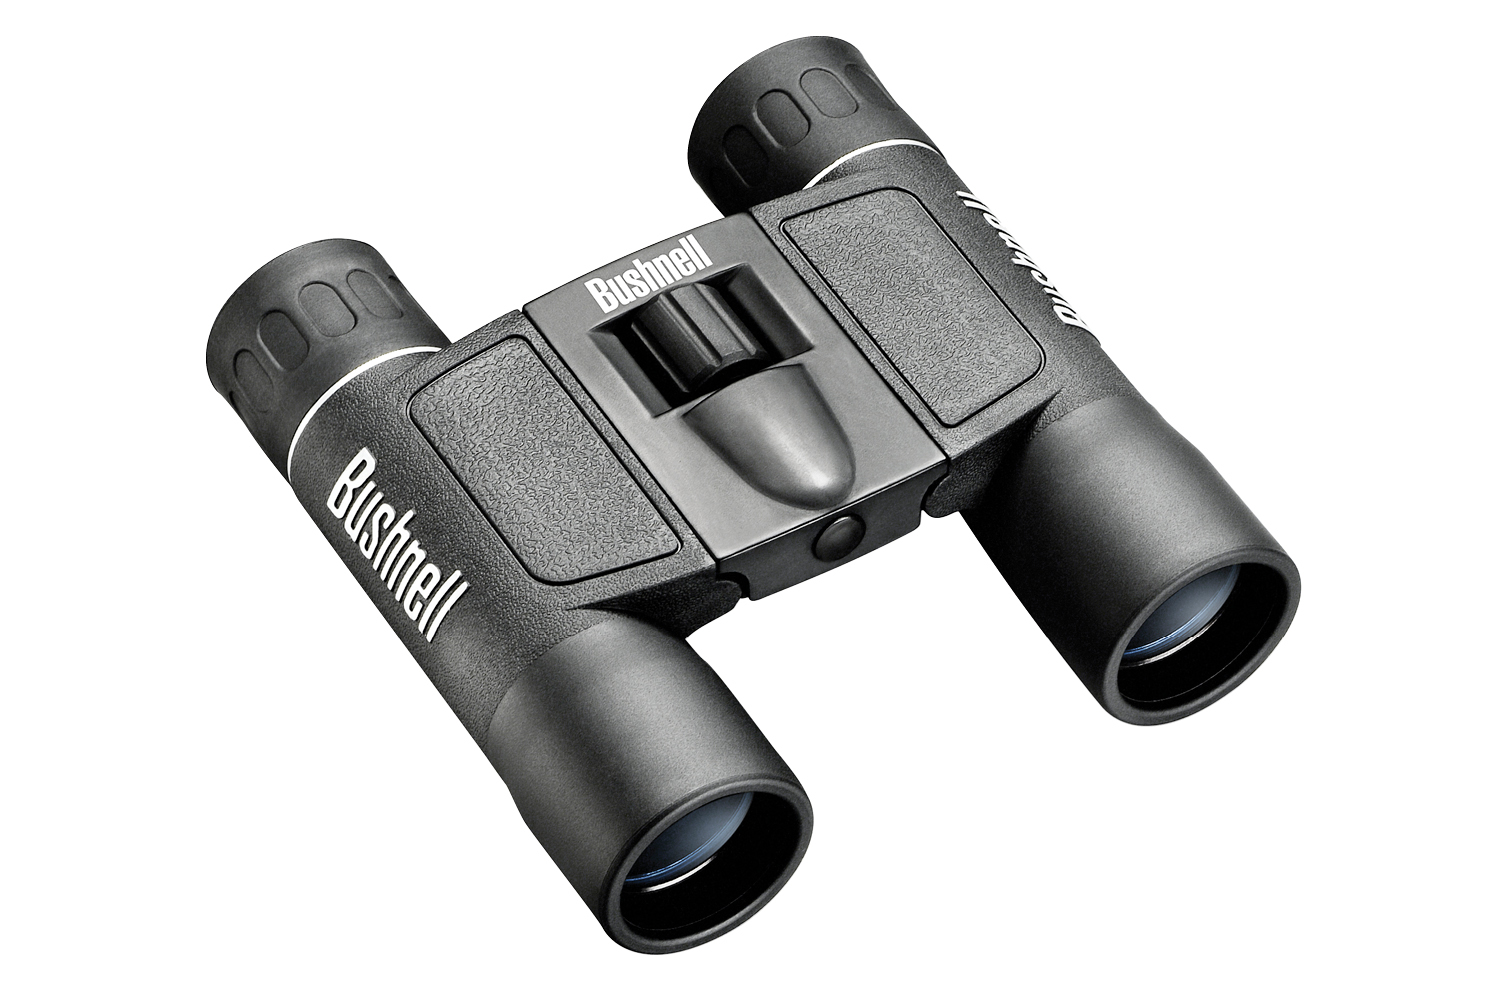 Бинокль Bushnell PowerView ROOF 10x25 (CM) бинокль fujinon 10x25 hcf phc